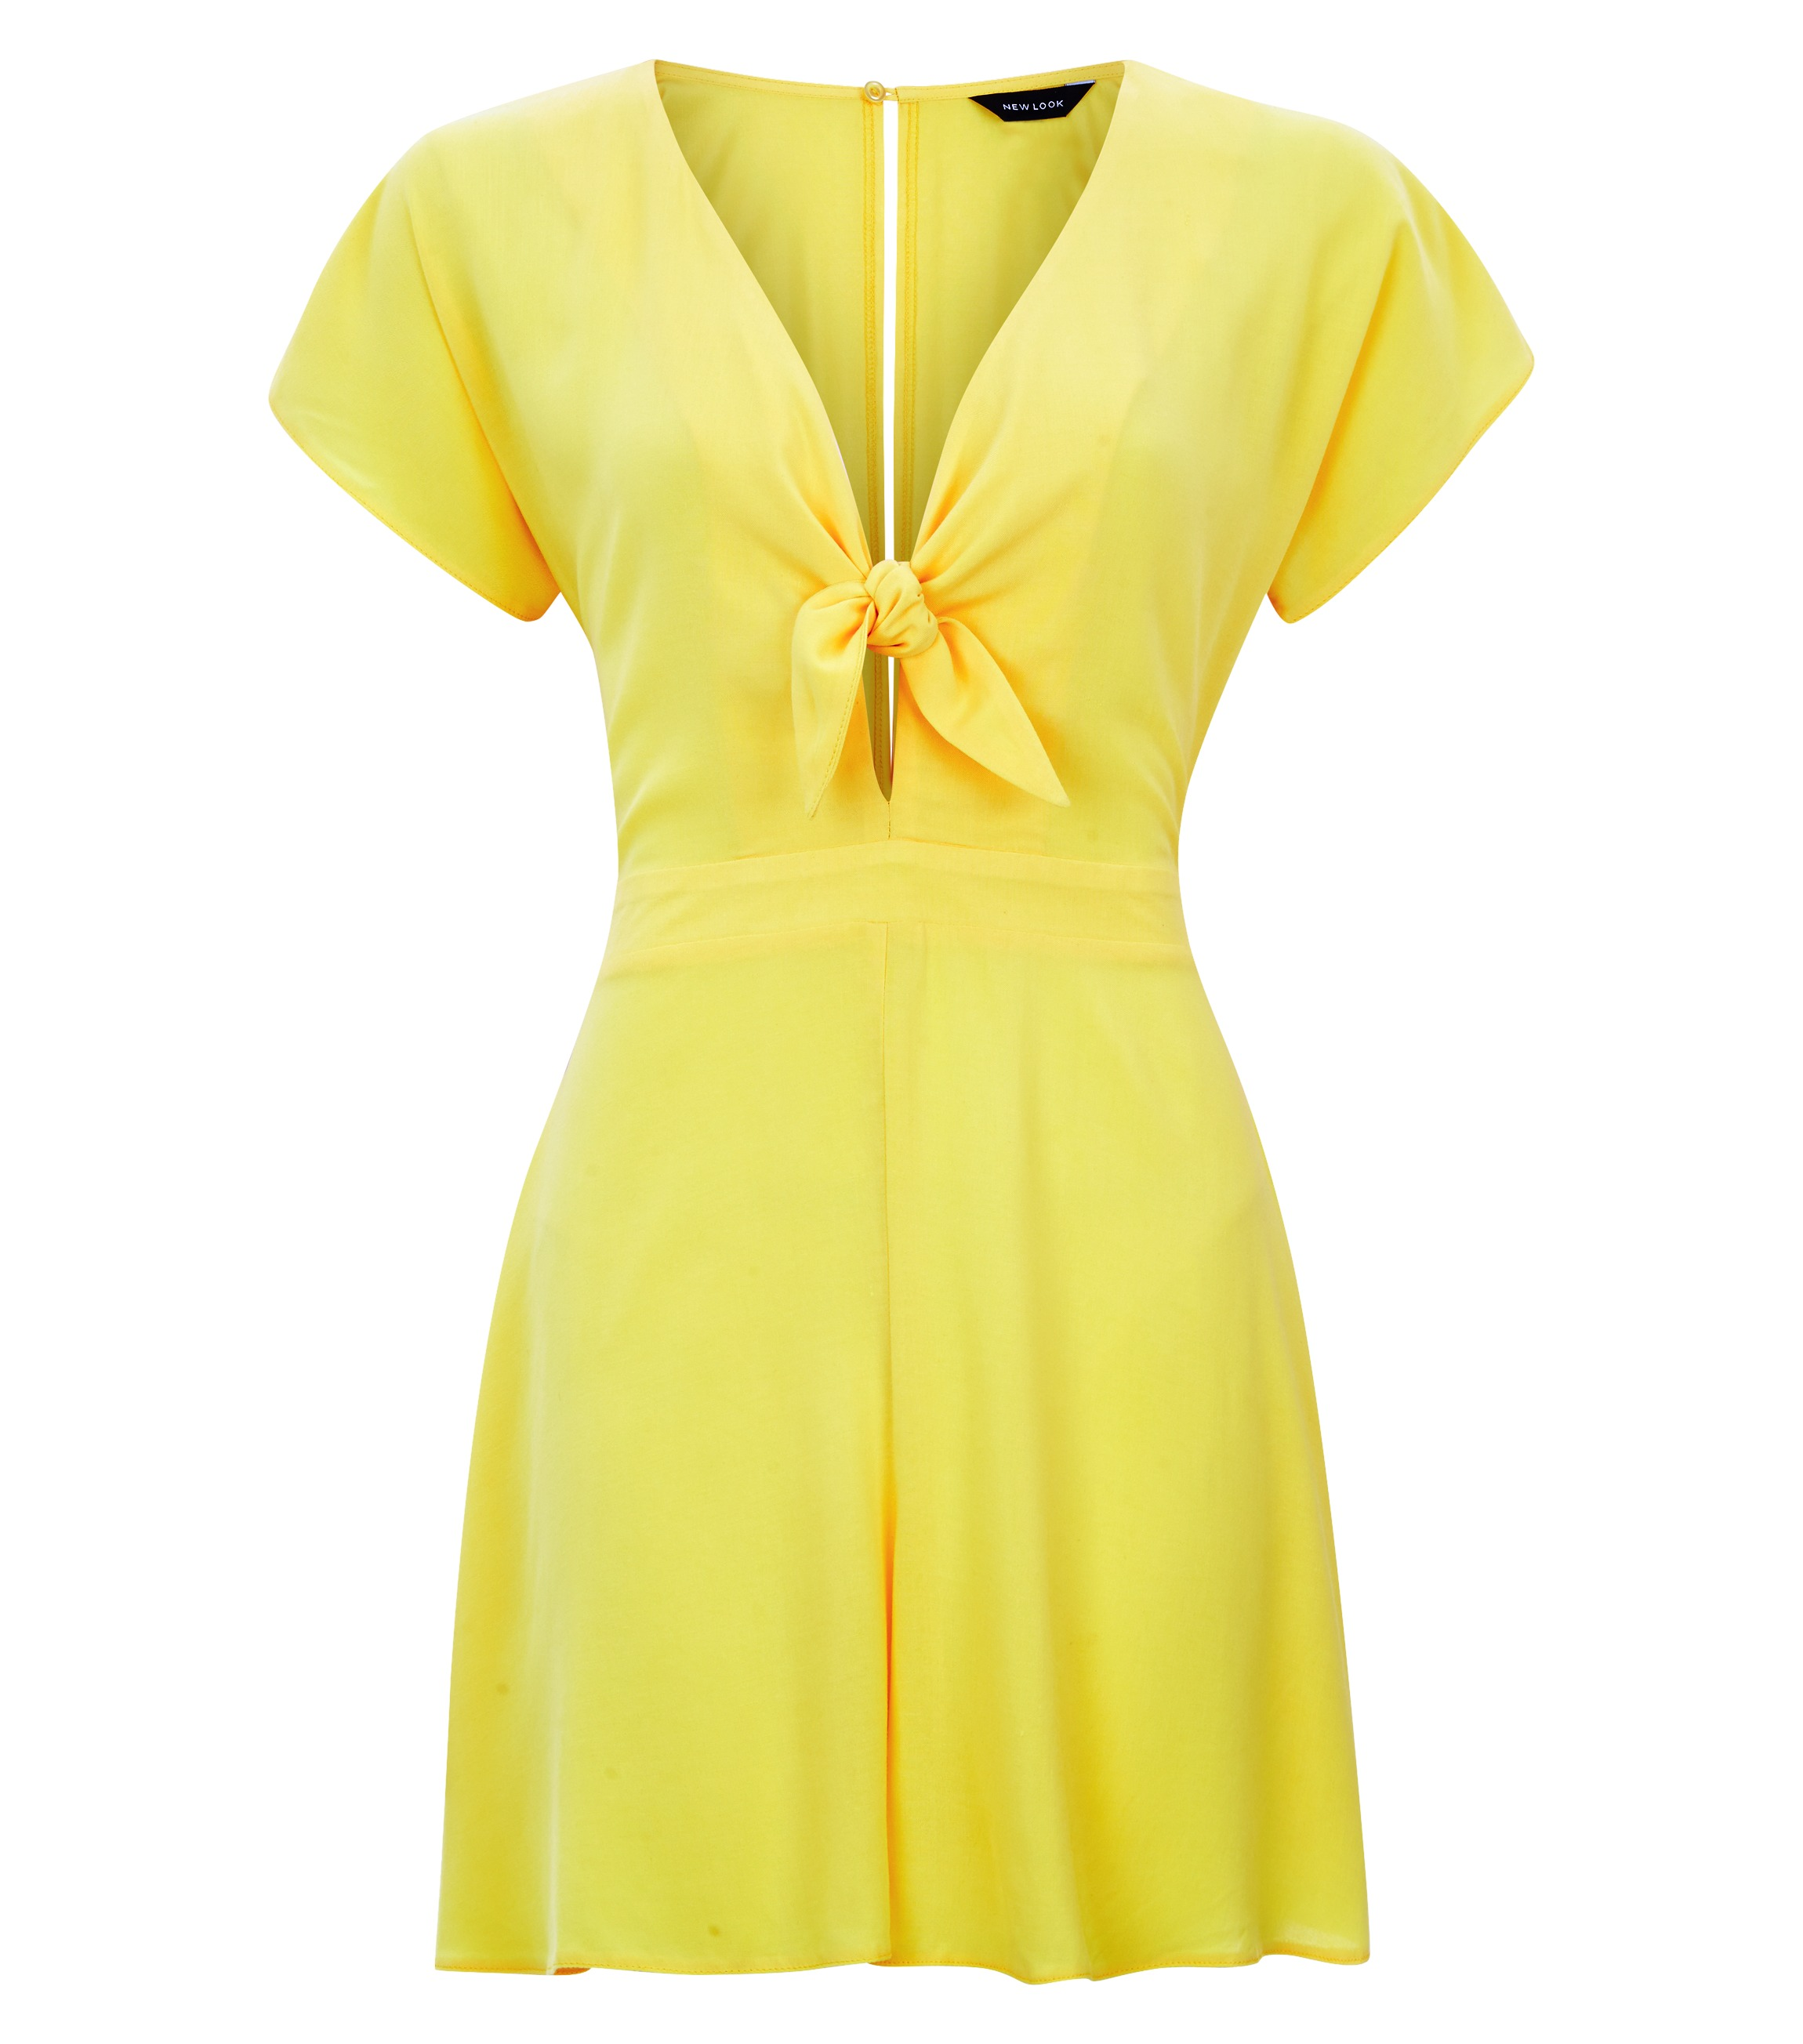 new look yellow playsuit (New Look/PA)